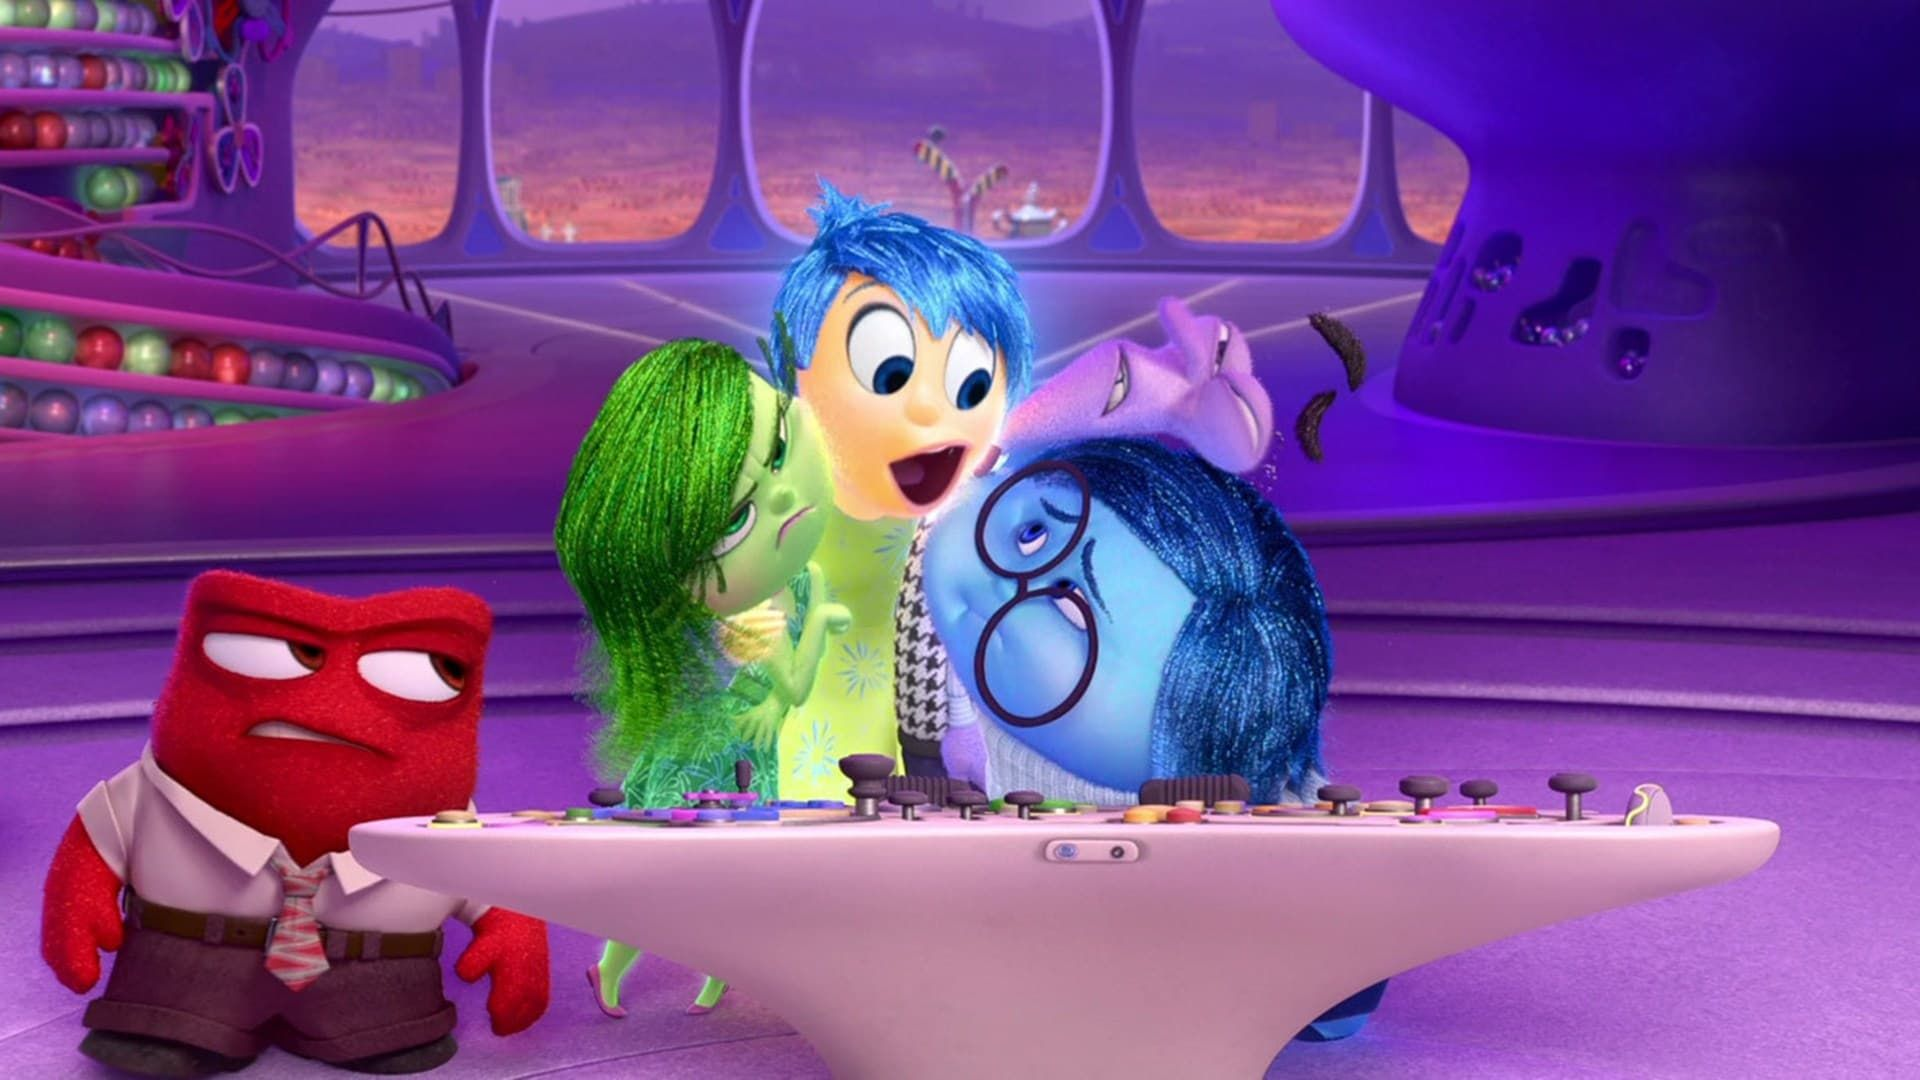 Inside out pictures images on hd wallpapers pinterest hd